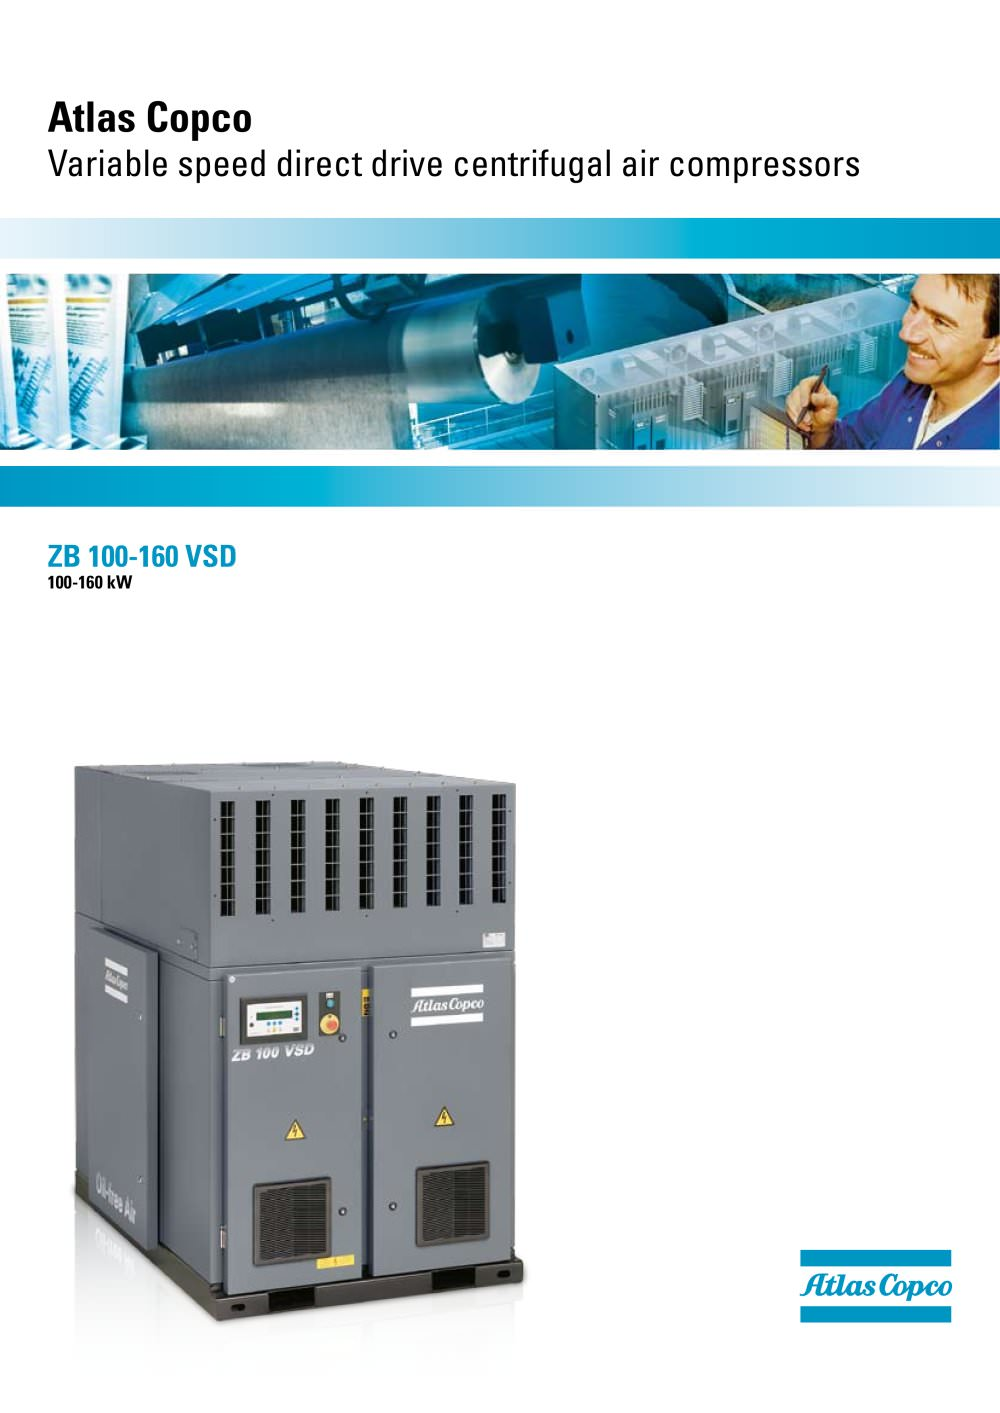 ZB 100-160 VSD 100-160 kW - 1 / 12 Pages